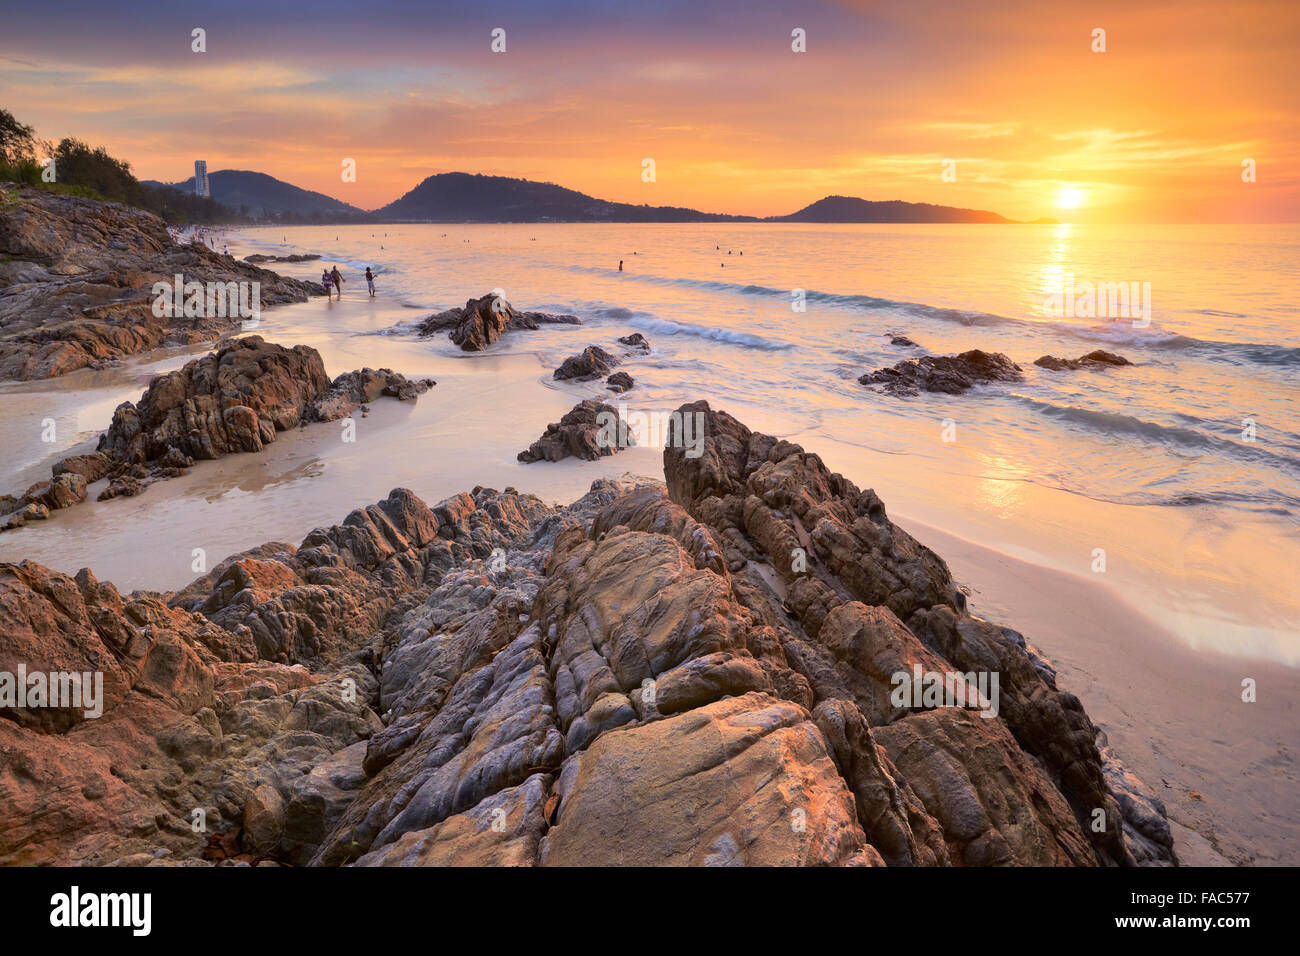 Thailand - Phuket Island, tropical Patong Beach at sunset time - Stock Image